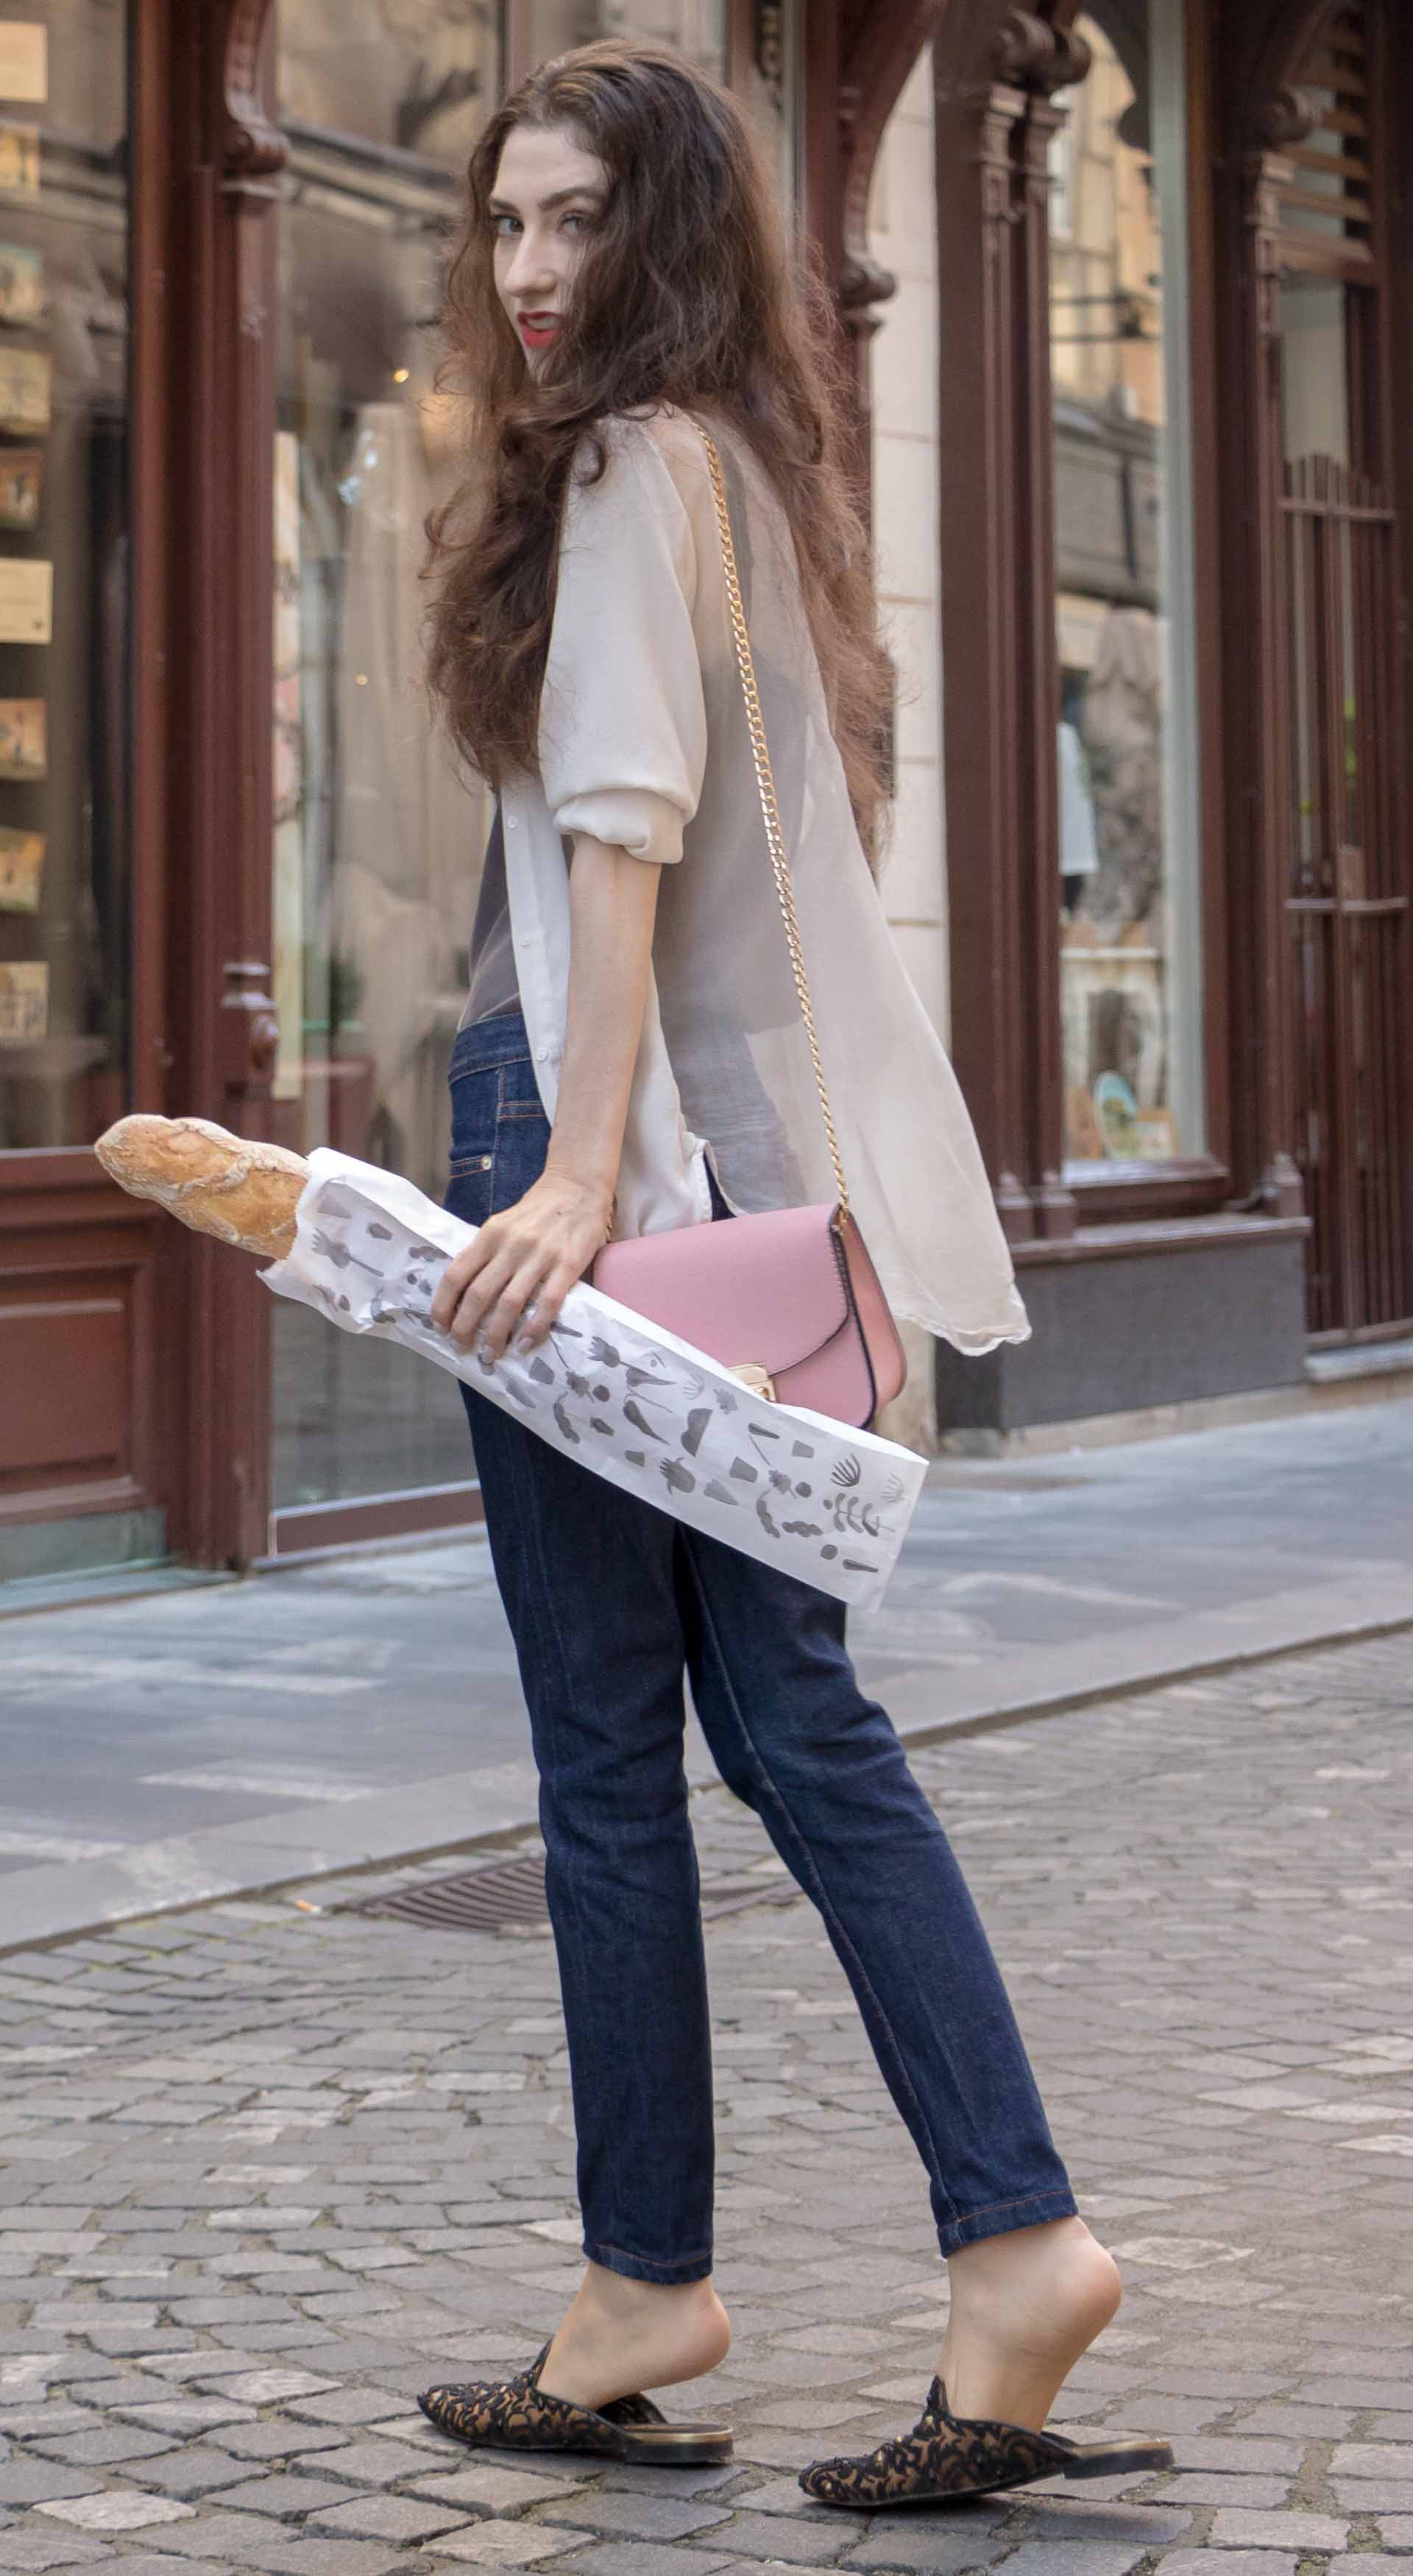 Fashion Blogger Veronika Lipar of Brunette from Wall Street wearing white sheer shirt with transparent back from Sandro Paris, grey silk slip top, A.P.C. dark denim jeans, mules, pink Furla shoulder bag, while holding a baguette walking on the street